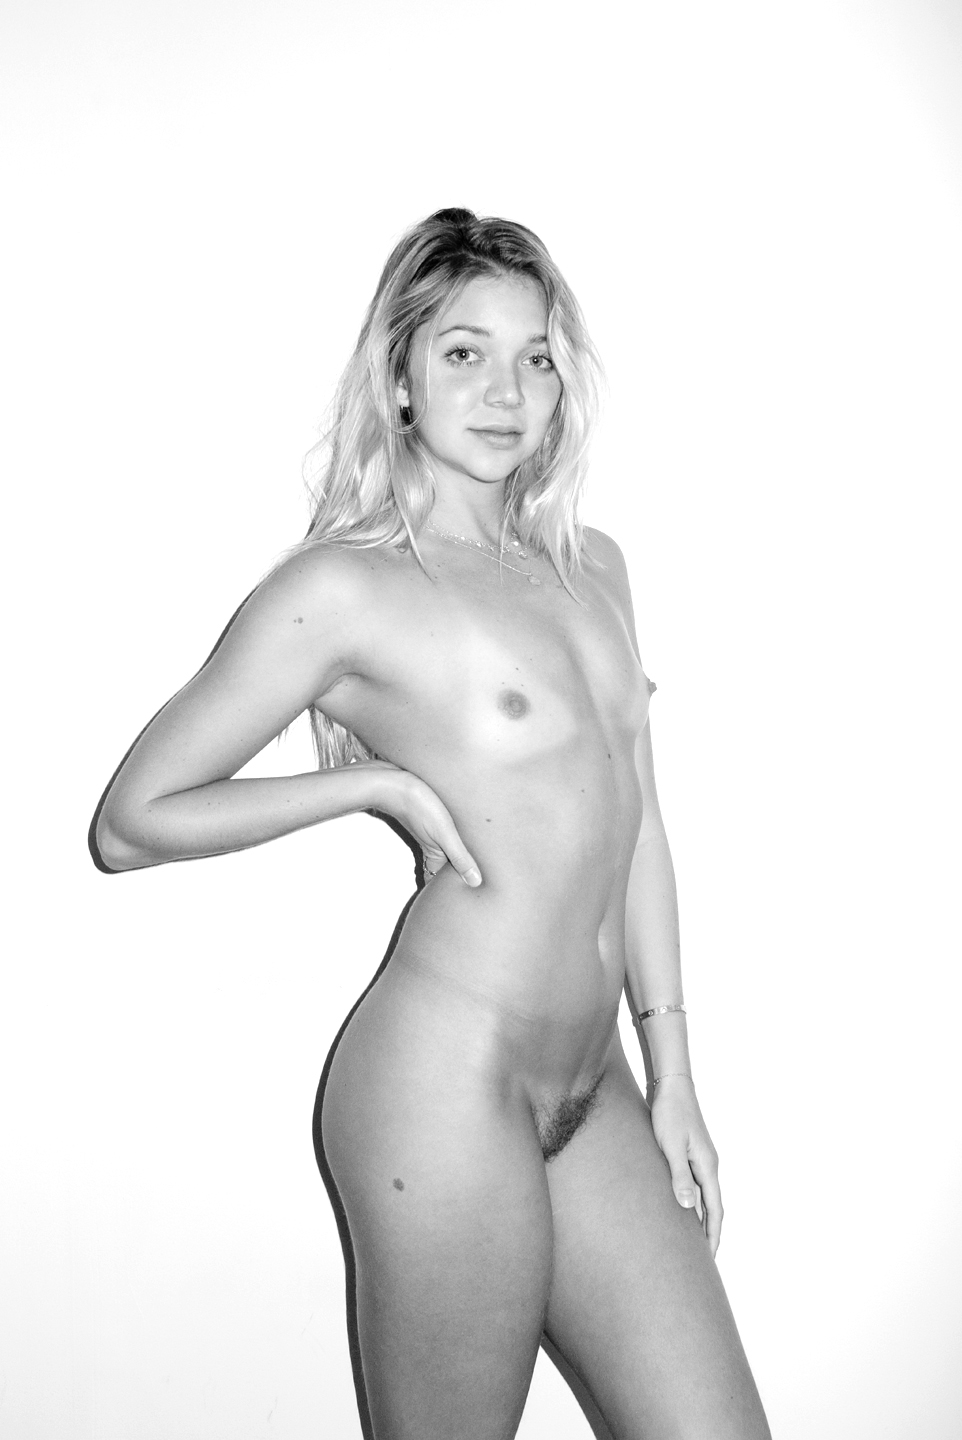 JESSIE ANDREWS BY TERRY RICHARDSON, NOVEMBER 15